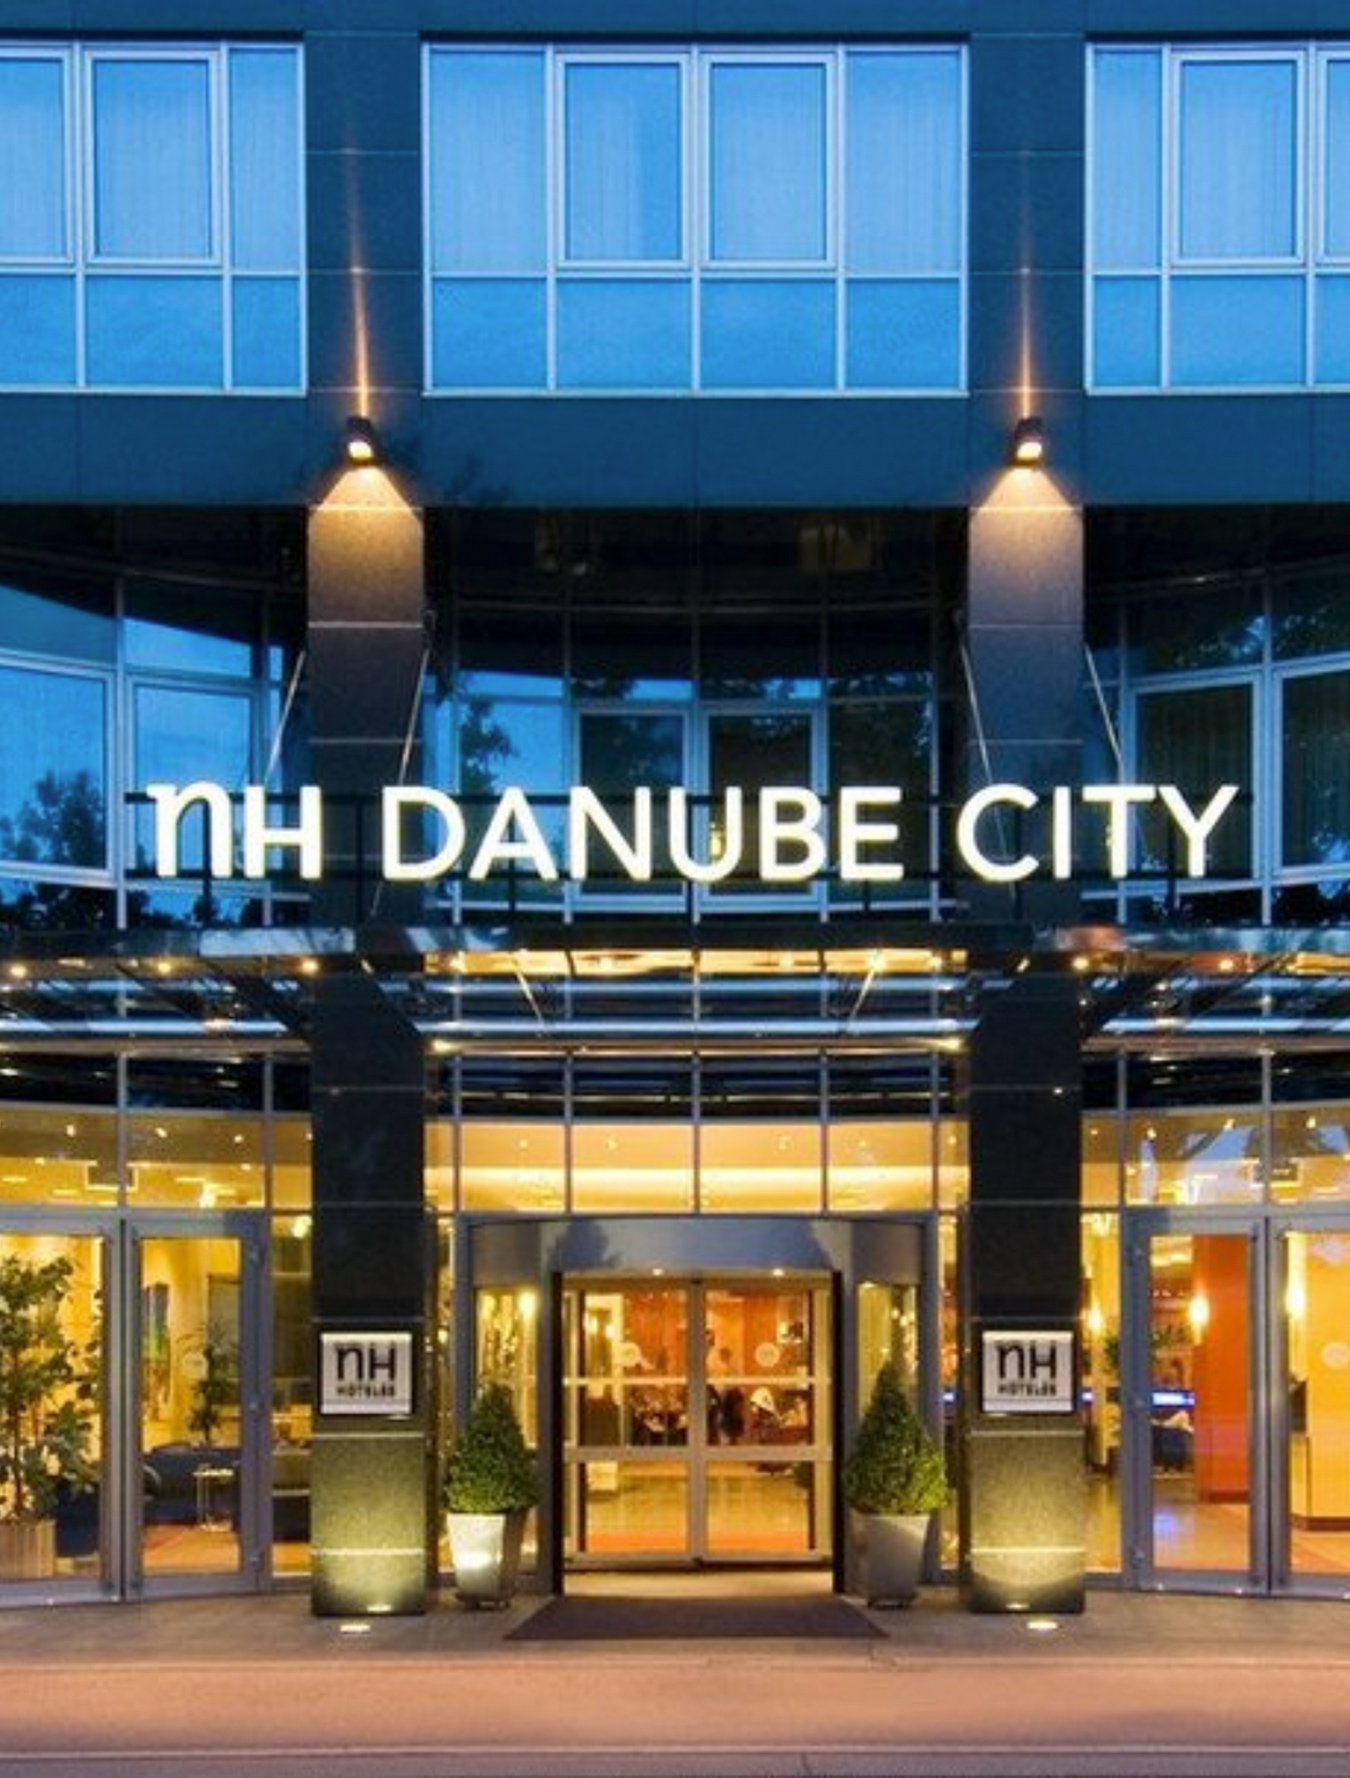 Wien - NH Danube City